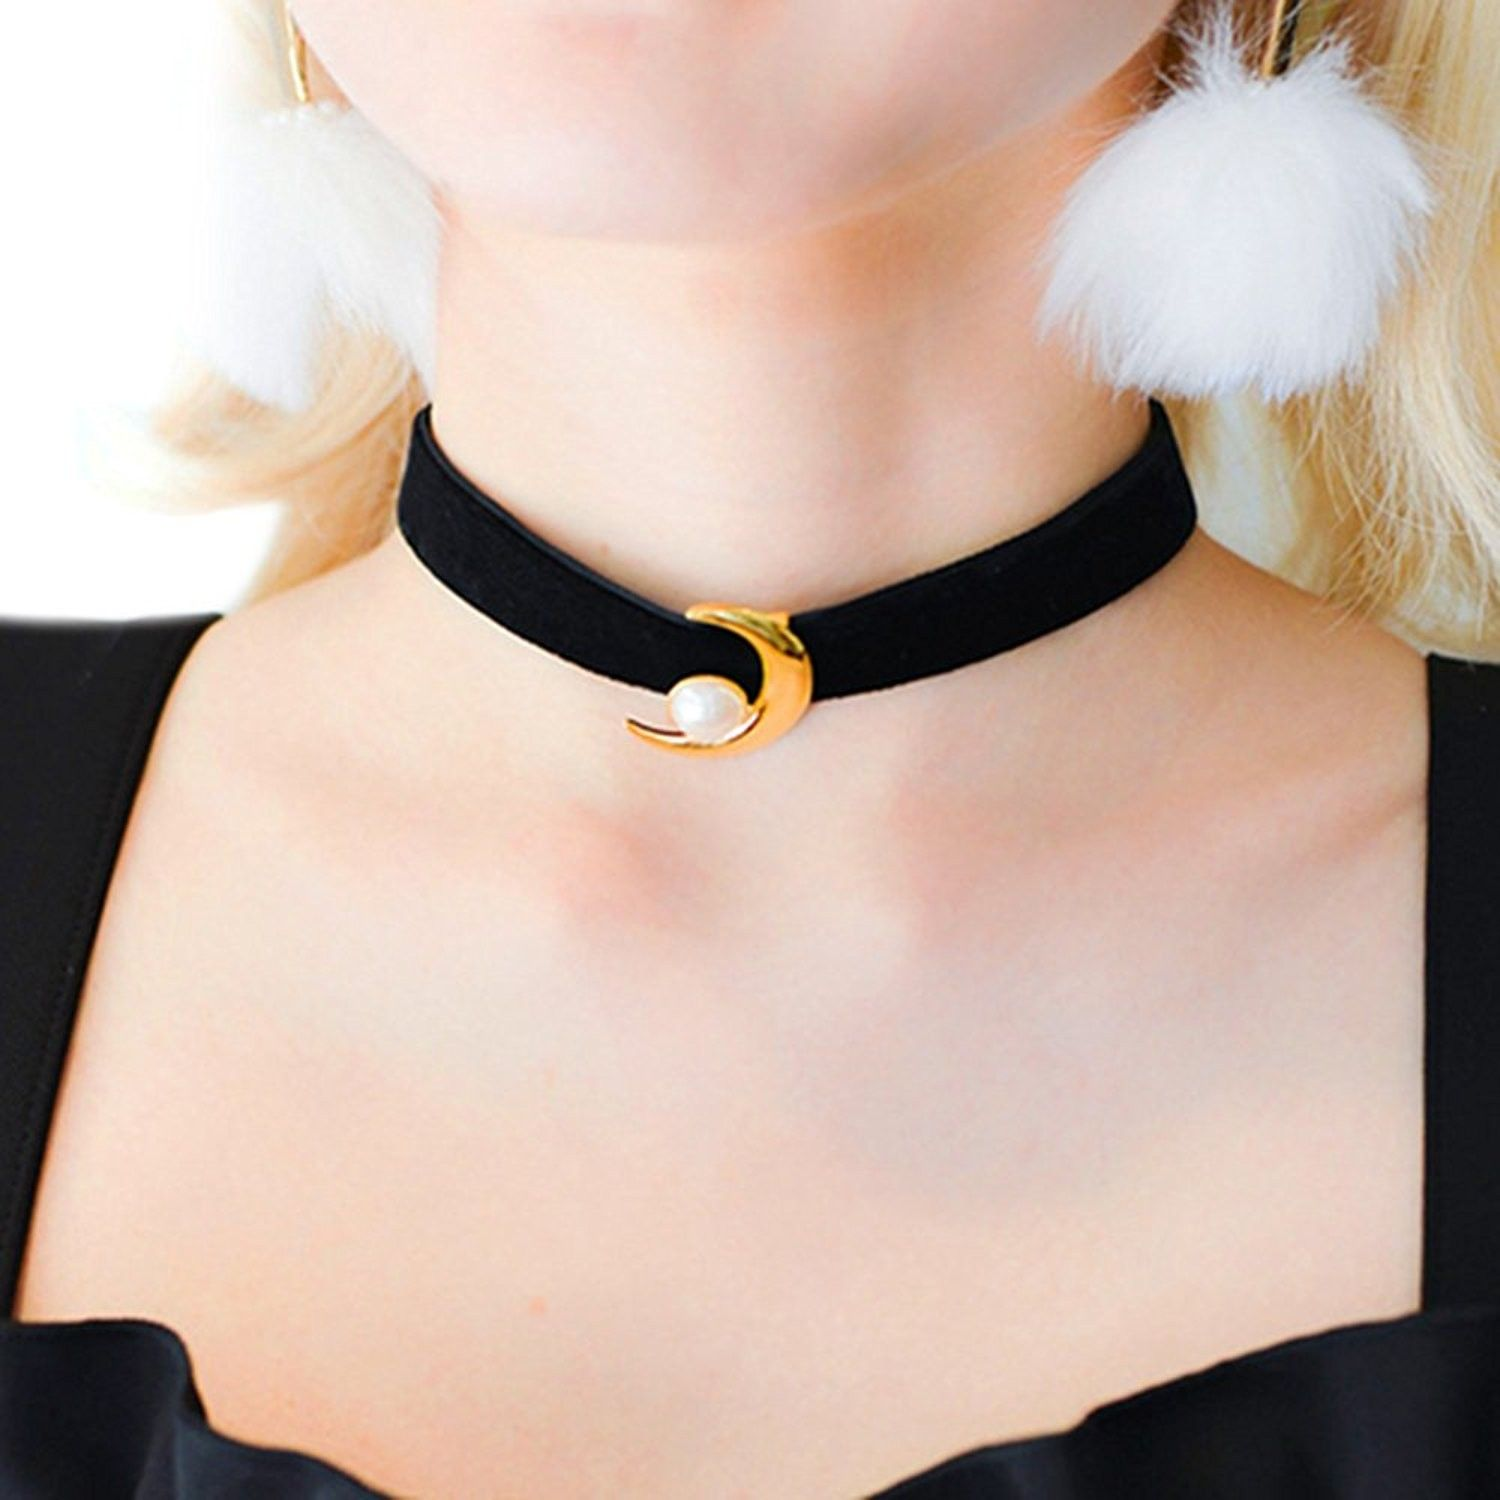 Dried flowers, Wedding necklace queen annes lace necklace Choker collar choker set Christmas gift Choker Necklace chokers for women